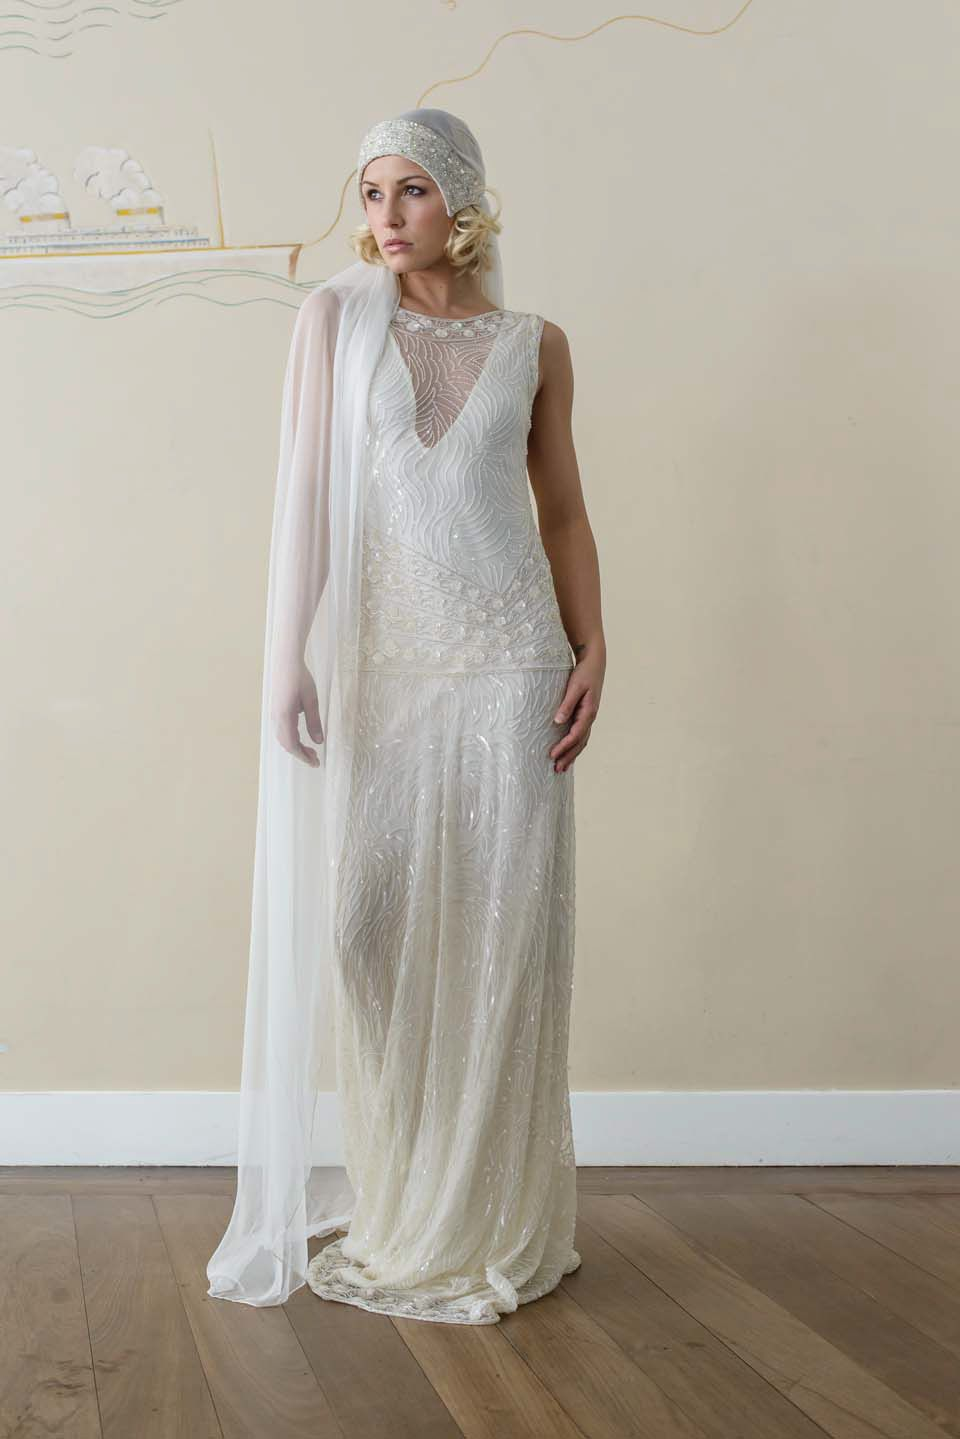 1930s wedding dress  Vicky Rowe A Debut Collection of s and s Inspired Heirloom